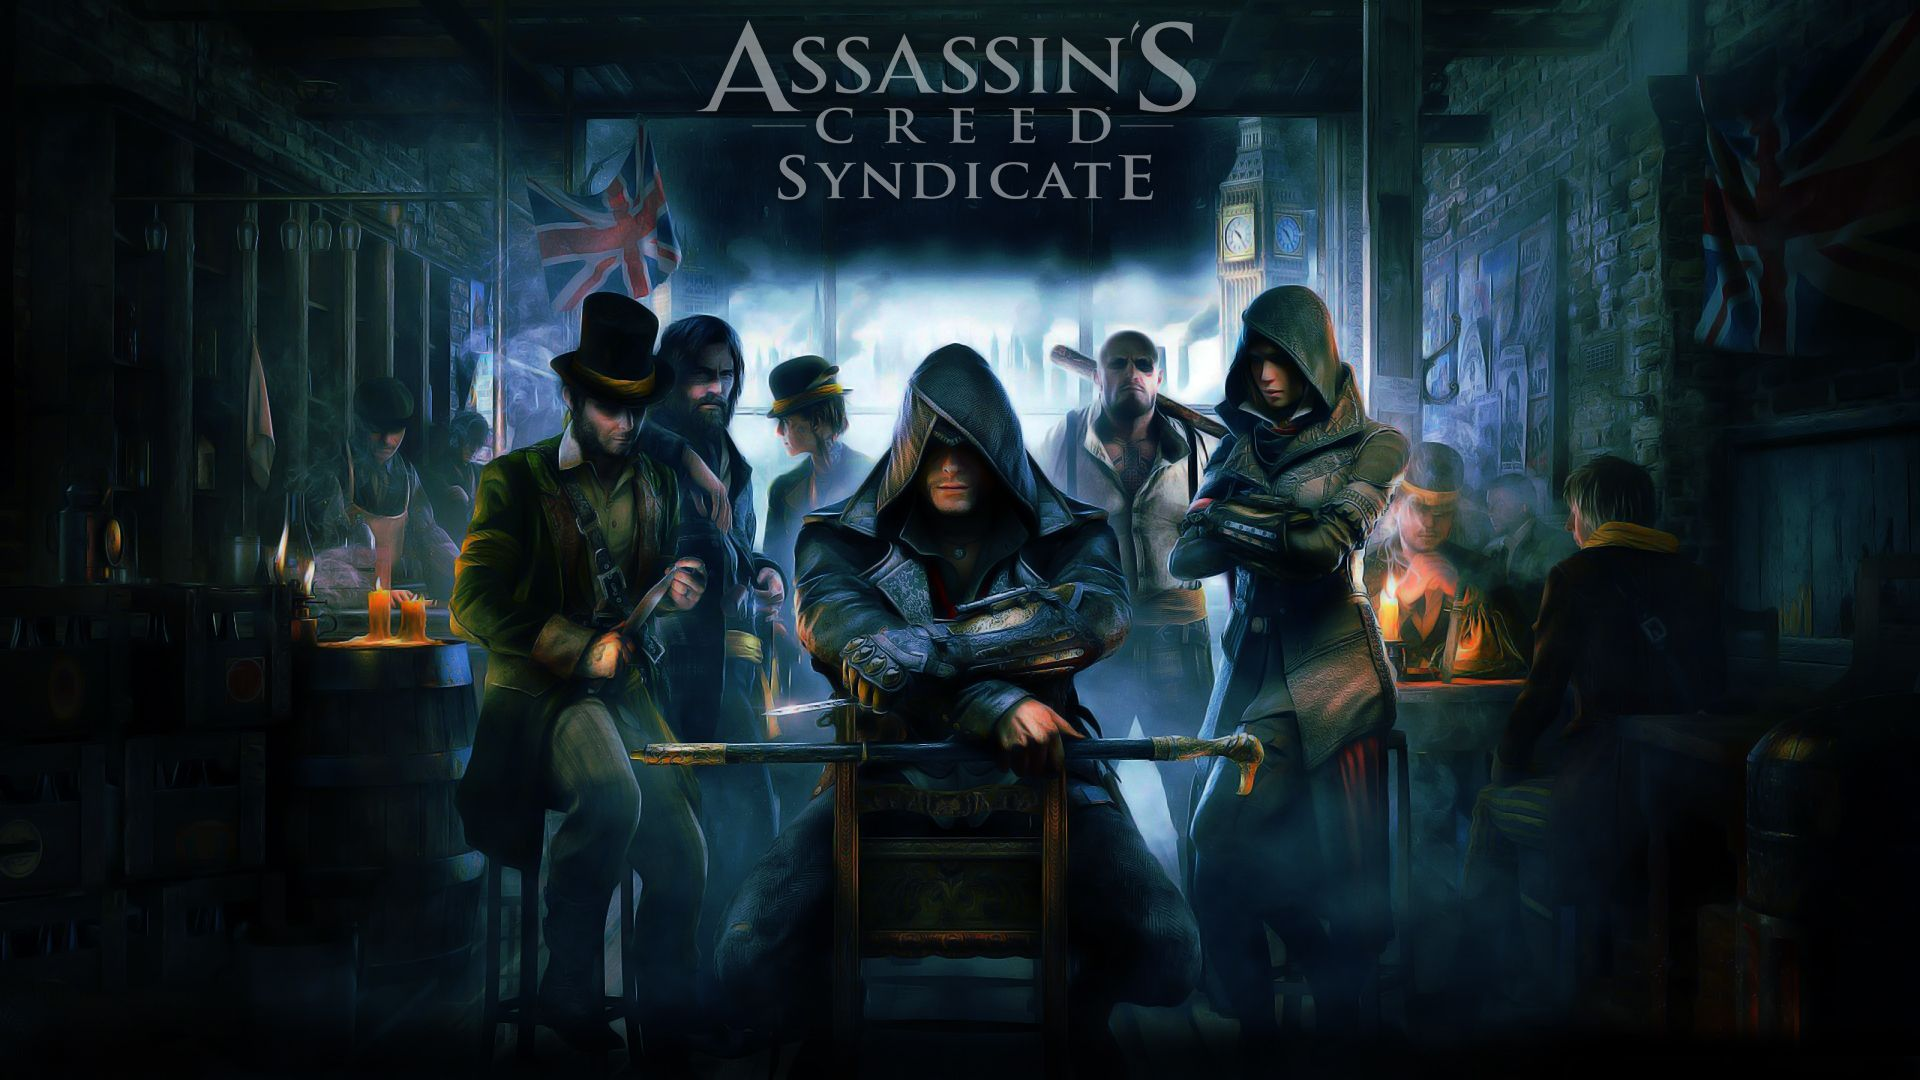 Assassins Creed Syndicate Wallpapers Top Free Assassins